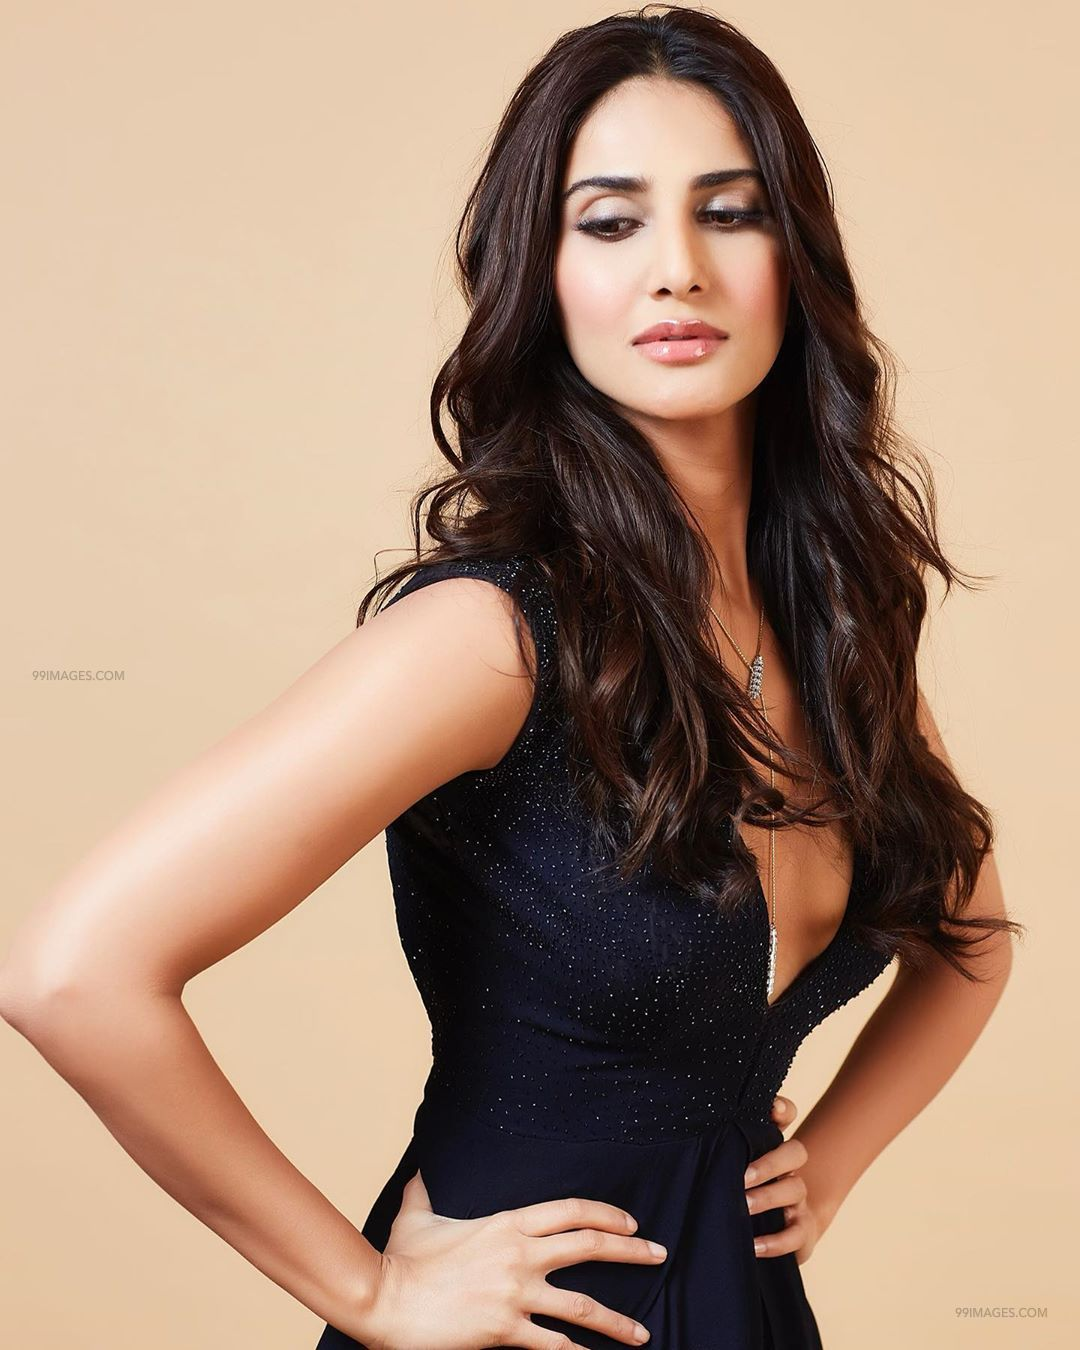 Vaani Kapoor HD Wallpapers (Desktop Background / Android / iPhone) (1080p, 4k) (101943) - Vaani Kapoor